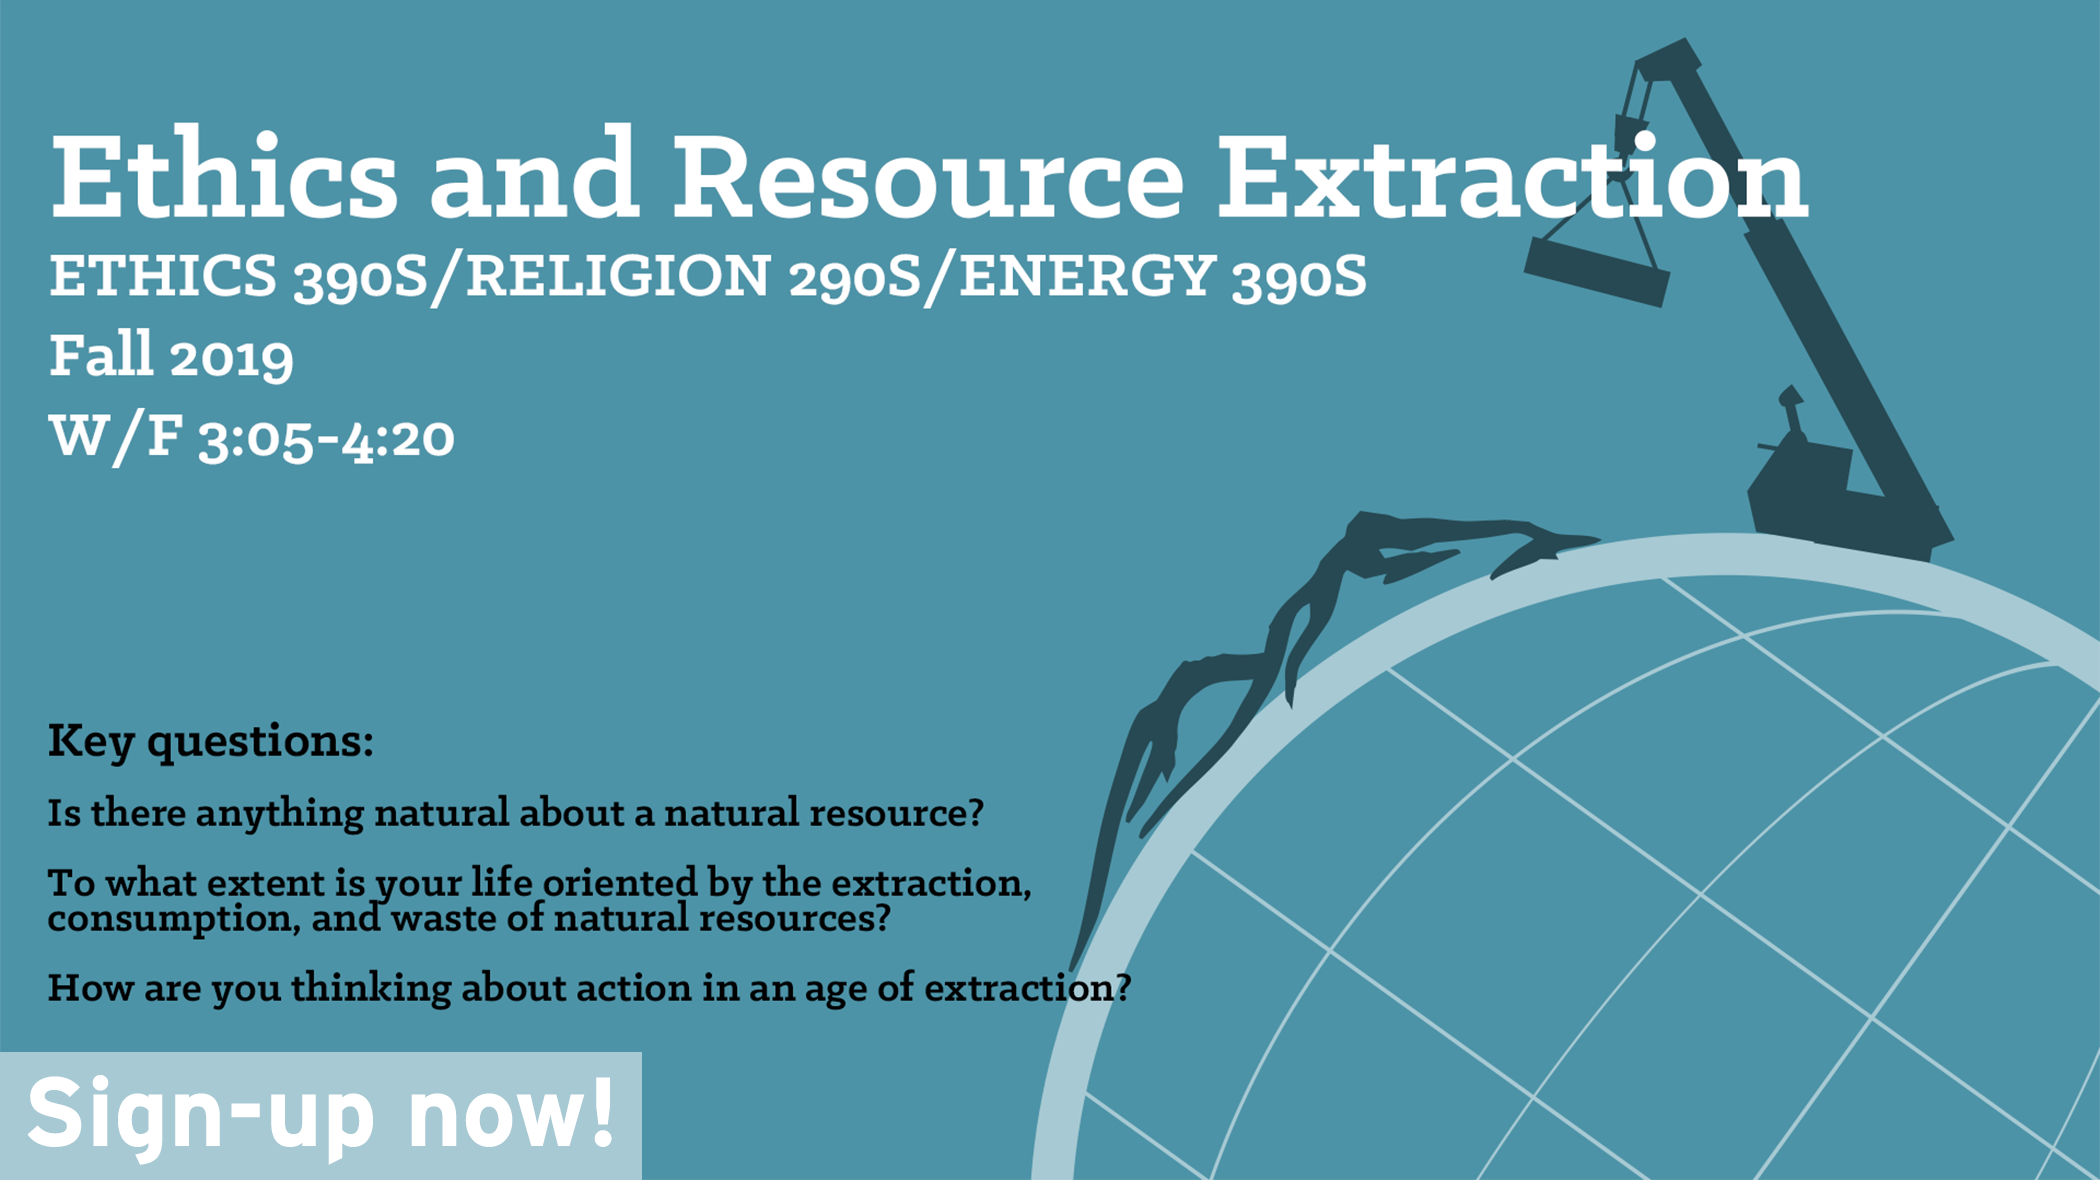 Ethics and Resource Extraction